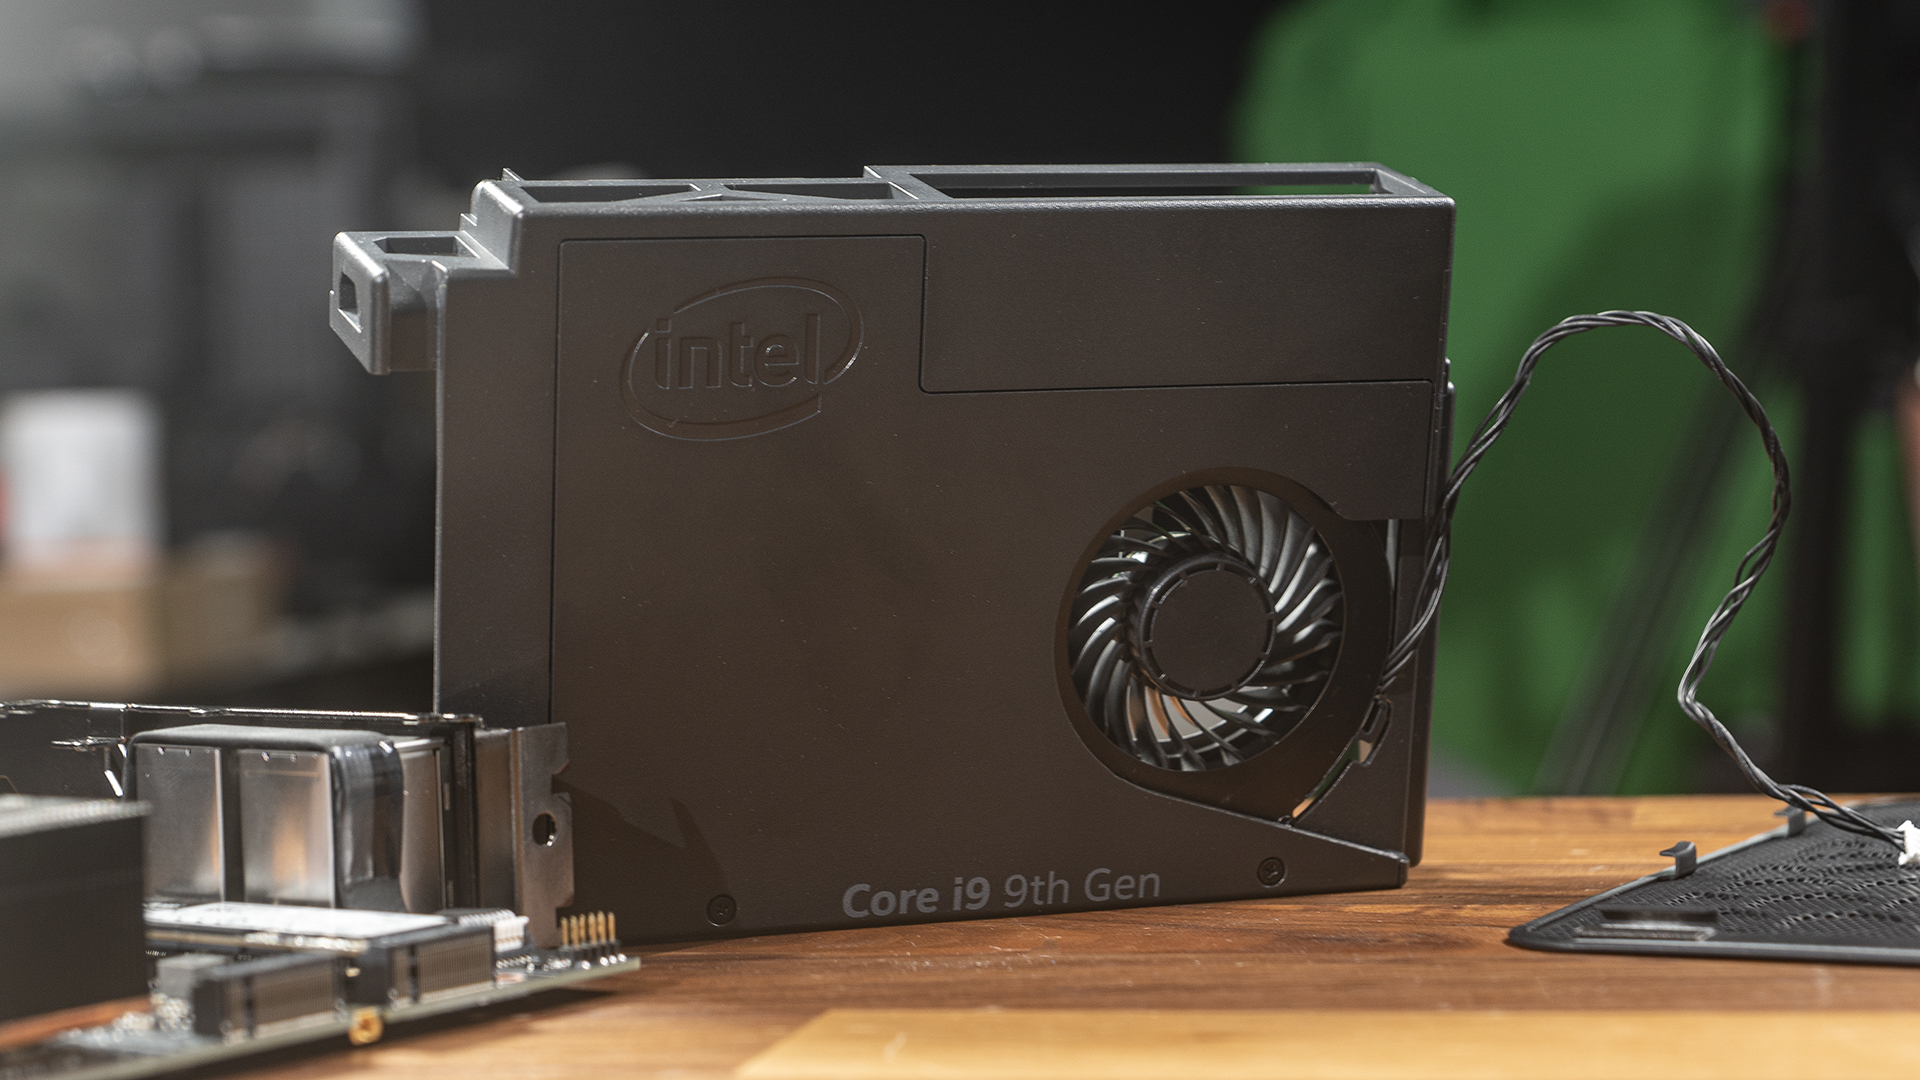 Ghost Canyon Intel NUC 9 Extreme Lüfter Compute Element